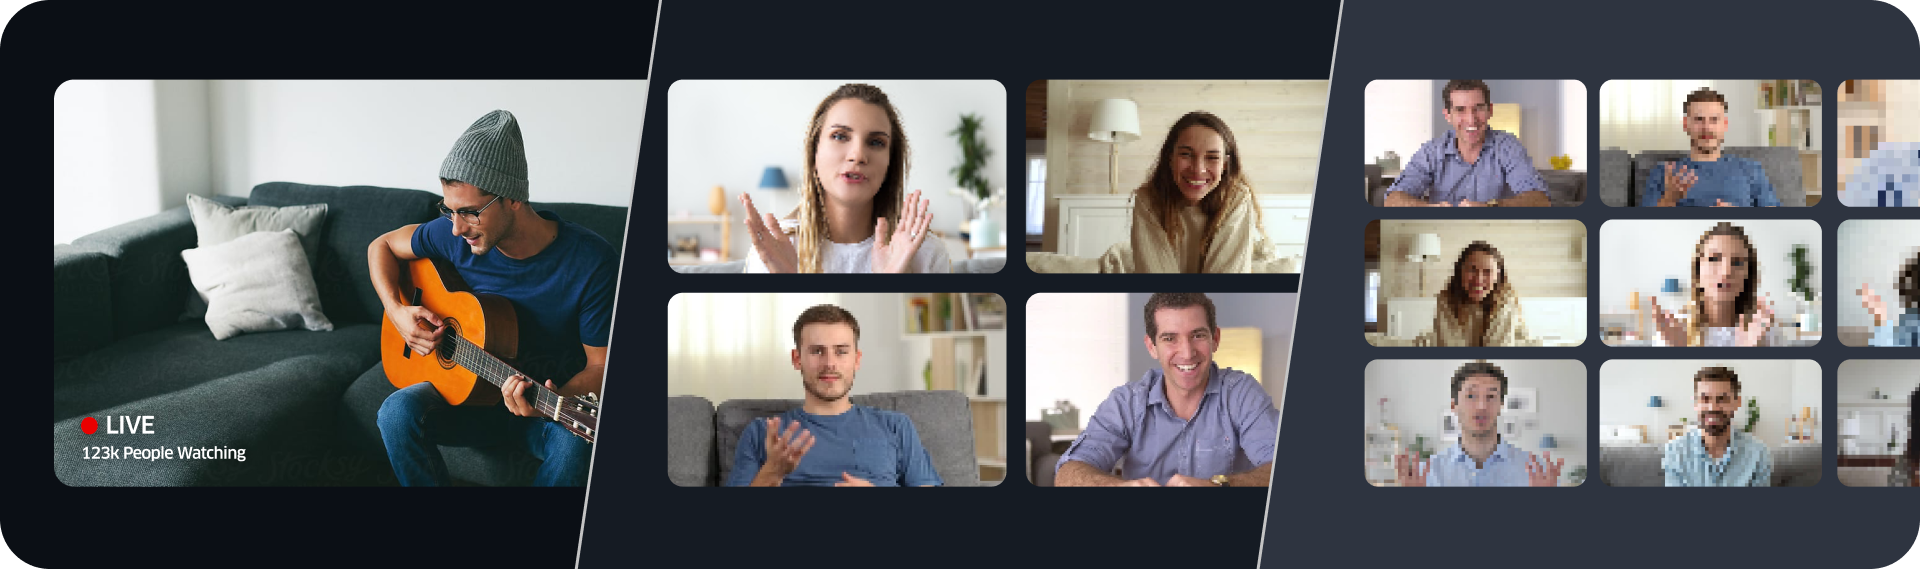 interactive video, live interactive video, zoom, 100ms, video conferencing solution, video solution